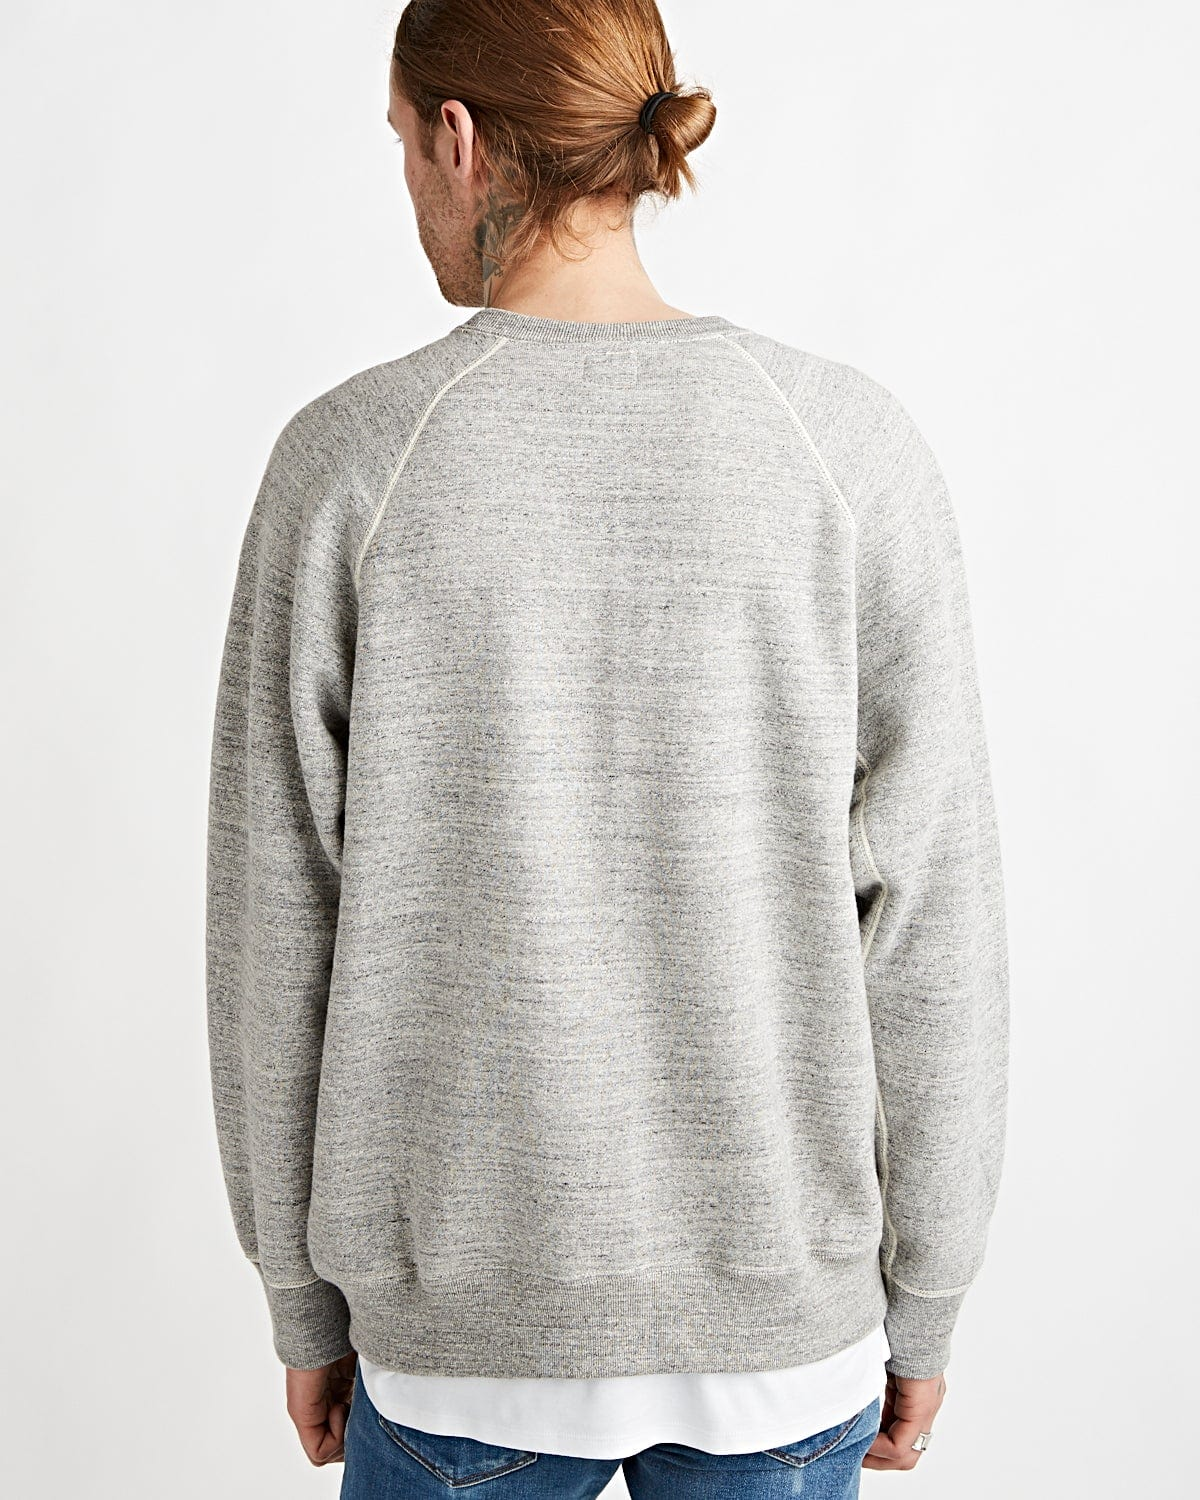 Sweatshirt Heather Grey